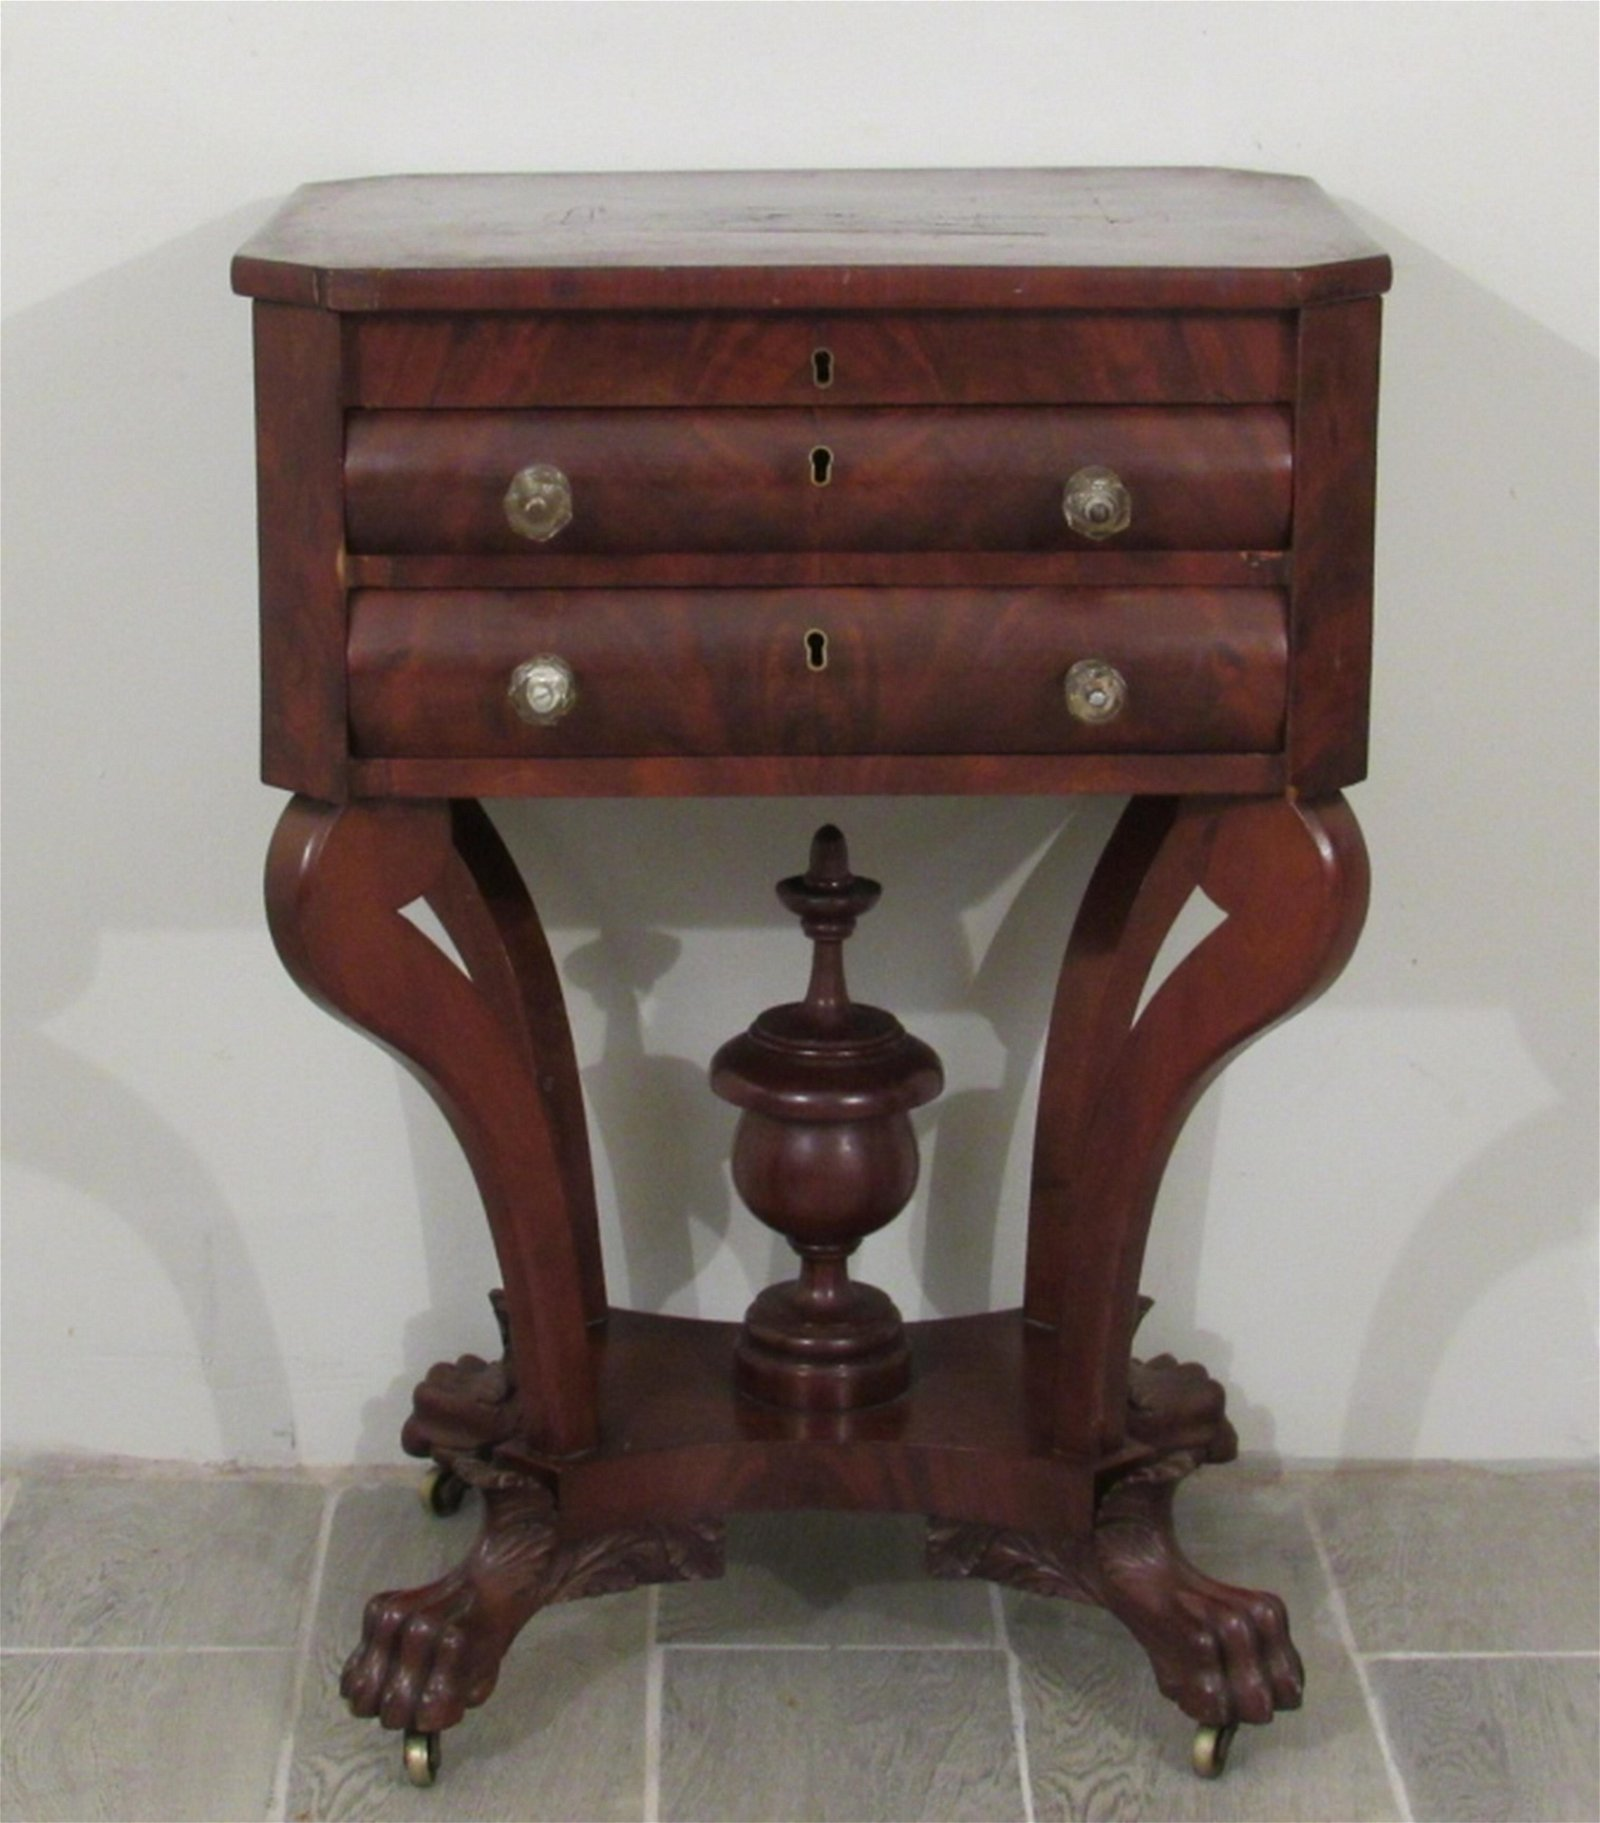 Antique American Empire Sewing Stand